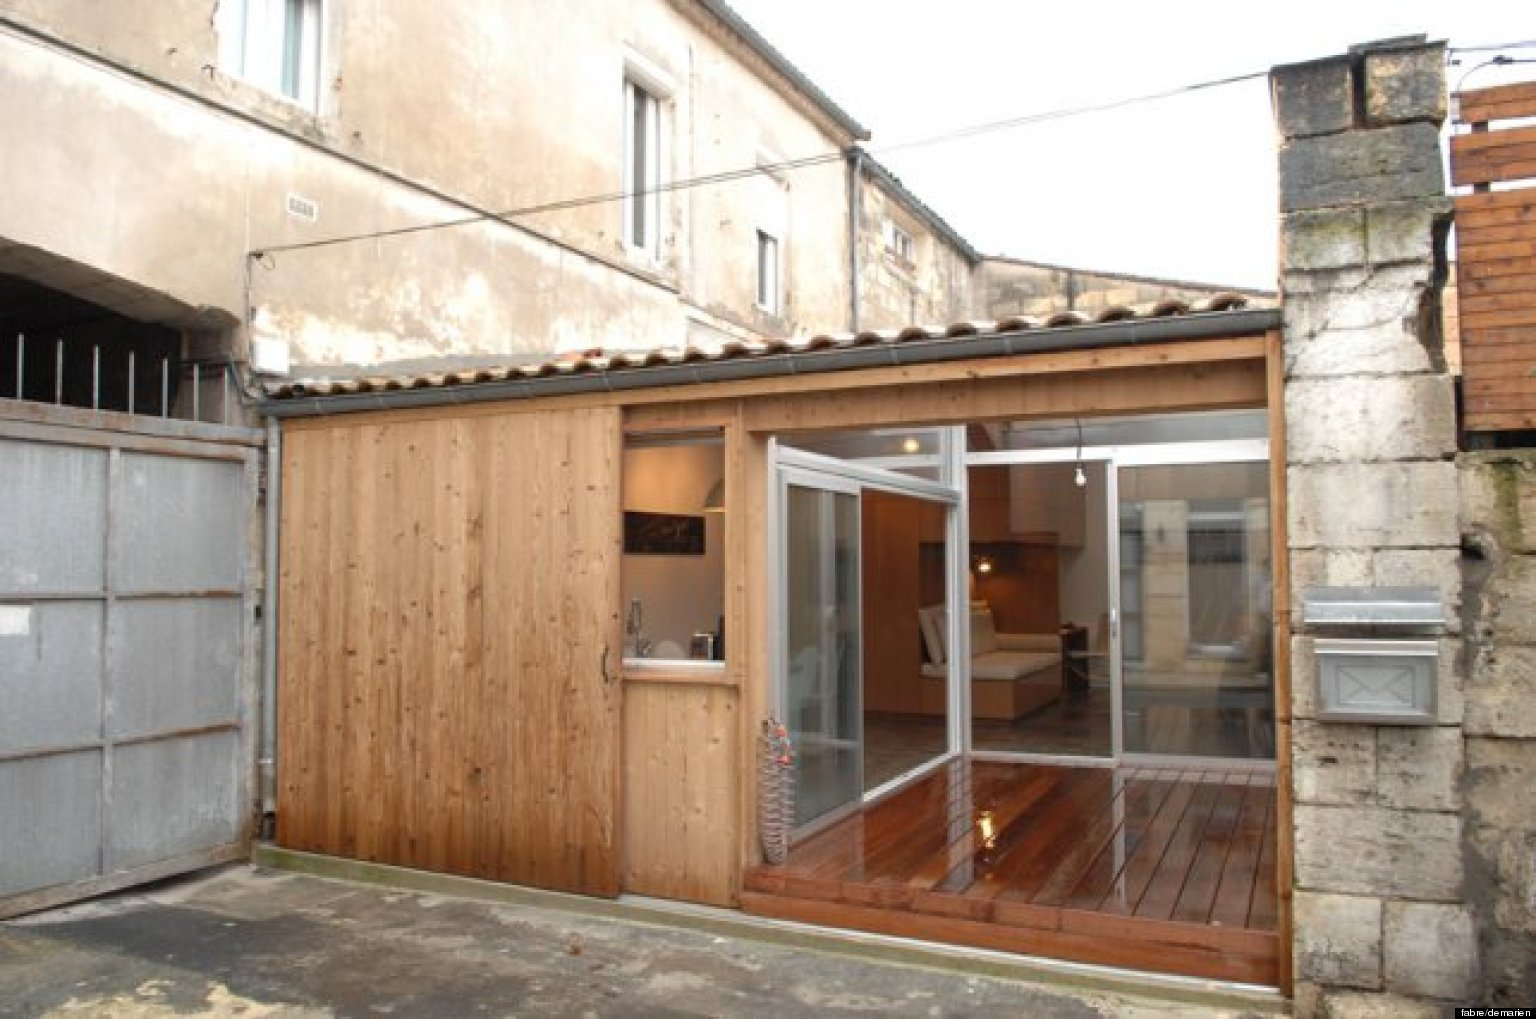 photos un garage transform en appartement par des